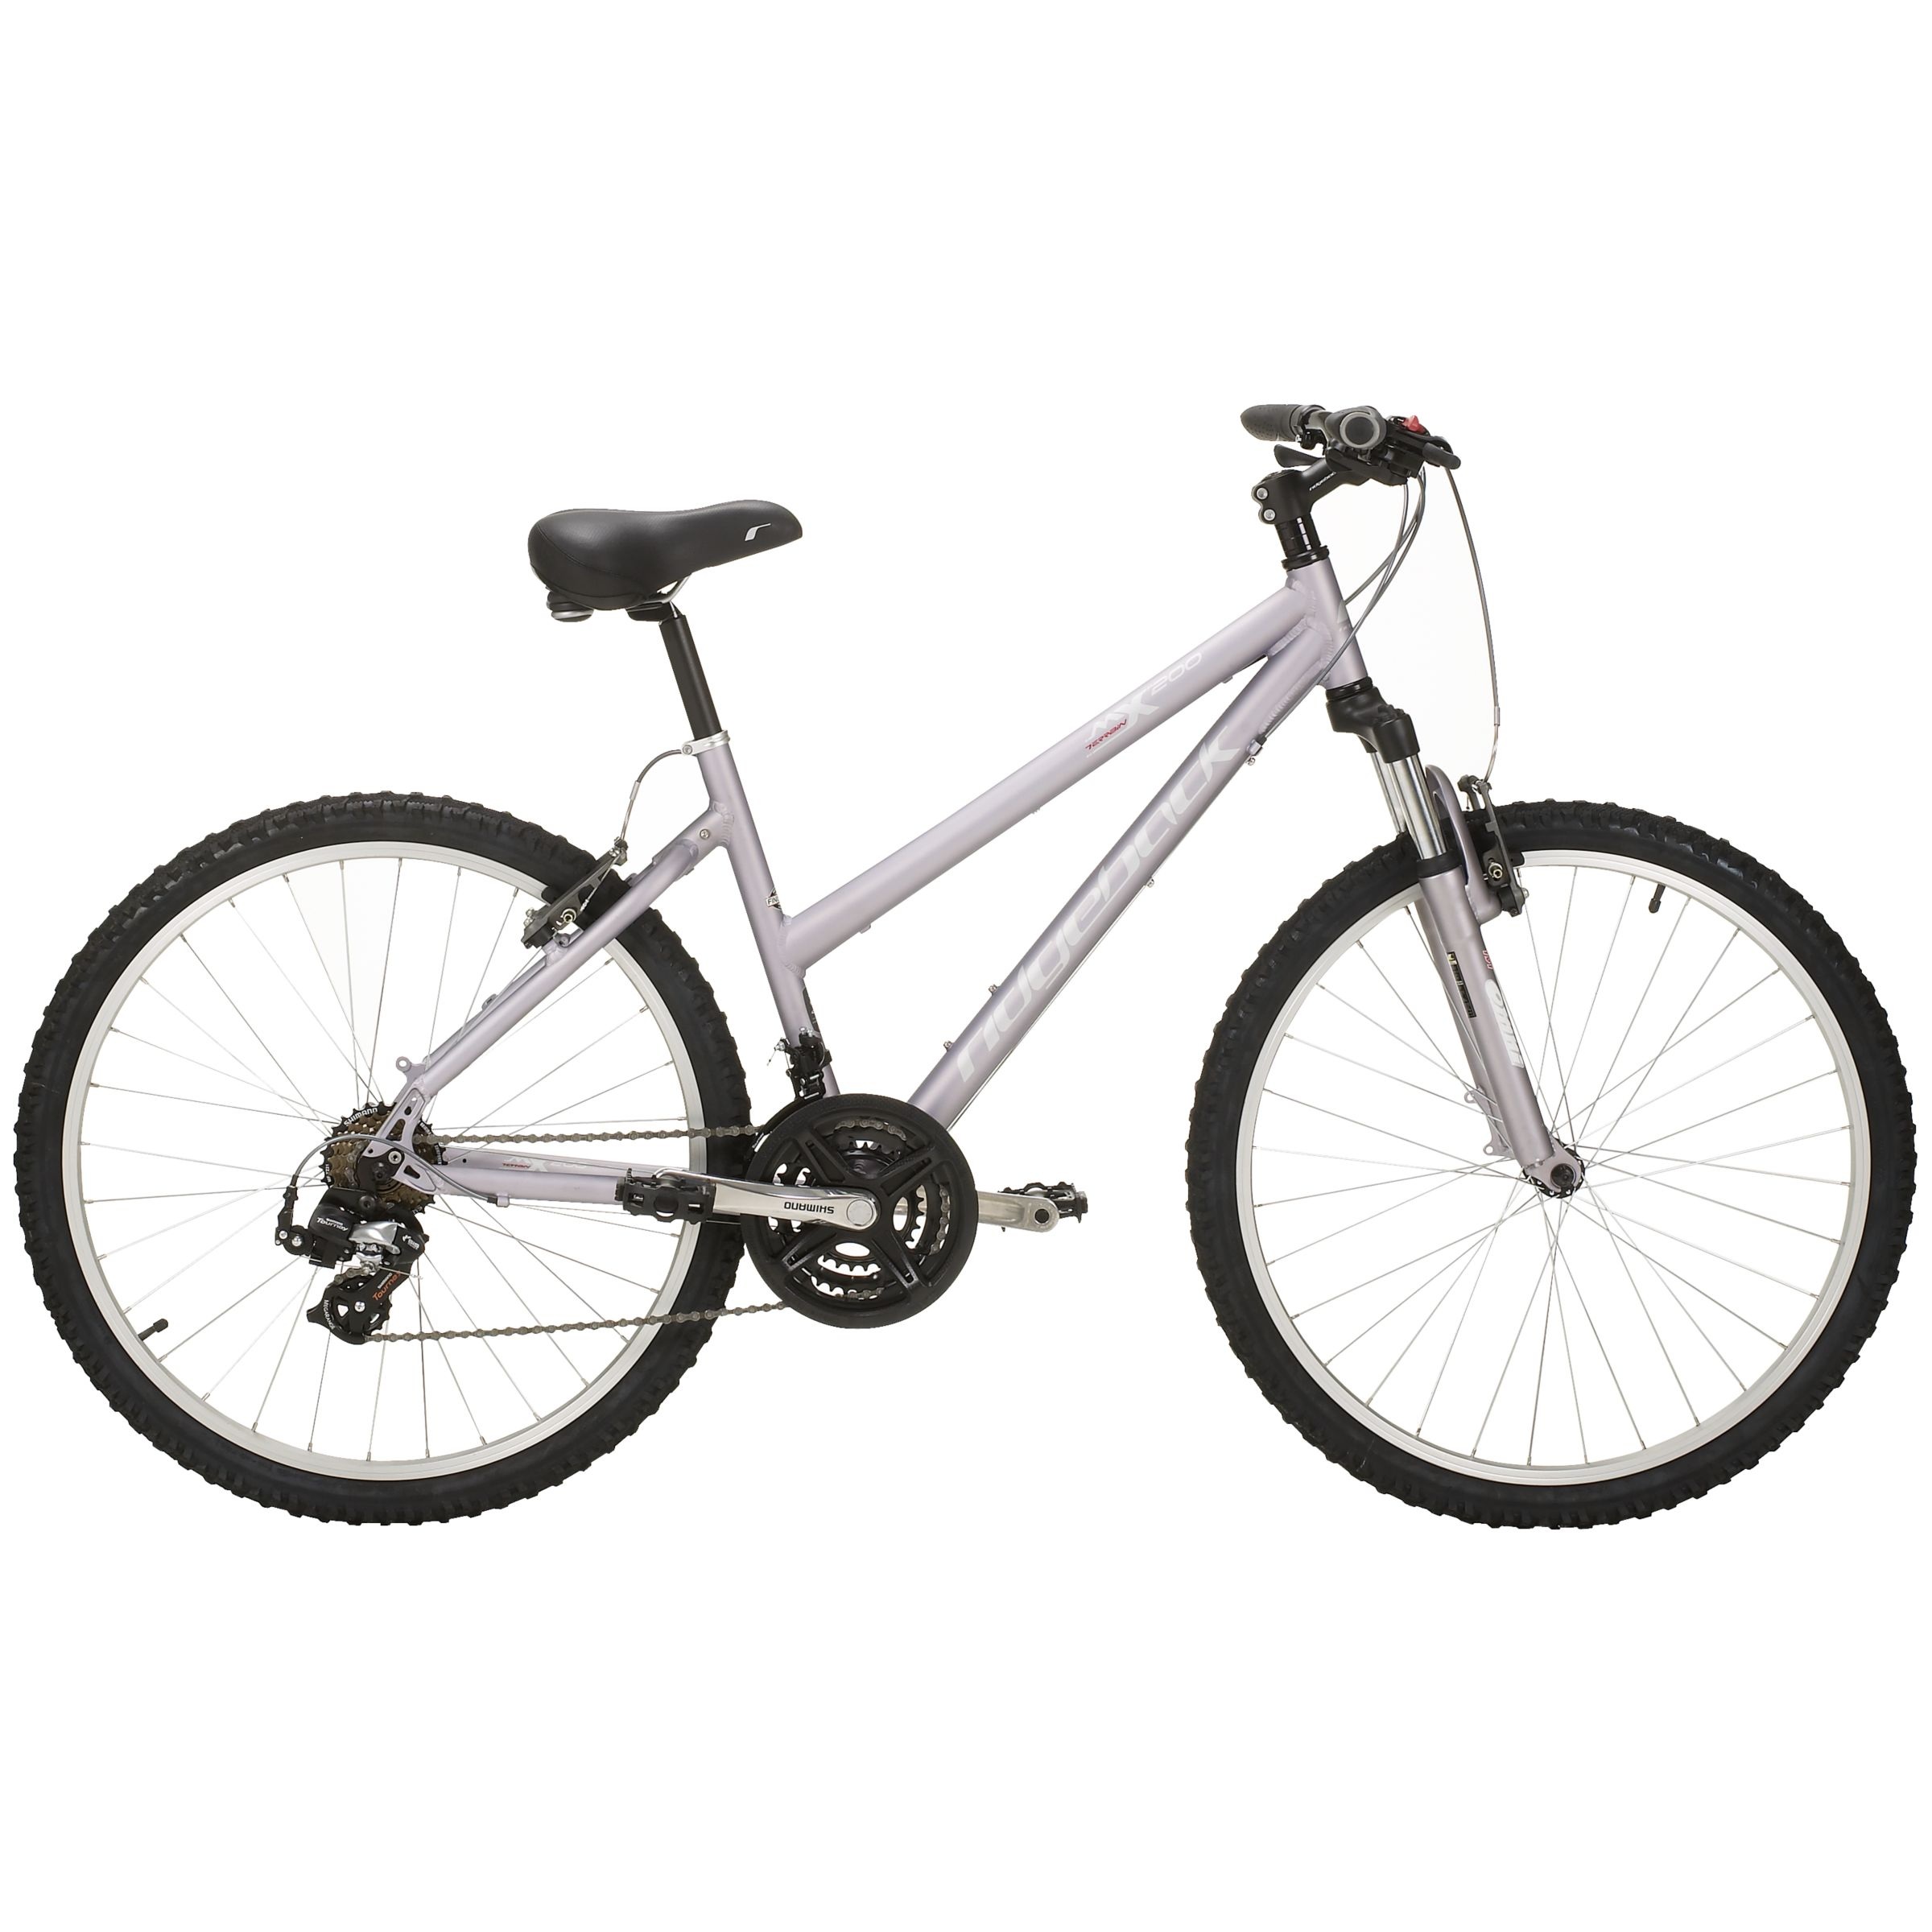 MX200 Womens Mountain Bike with